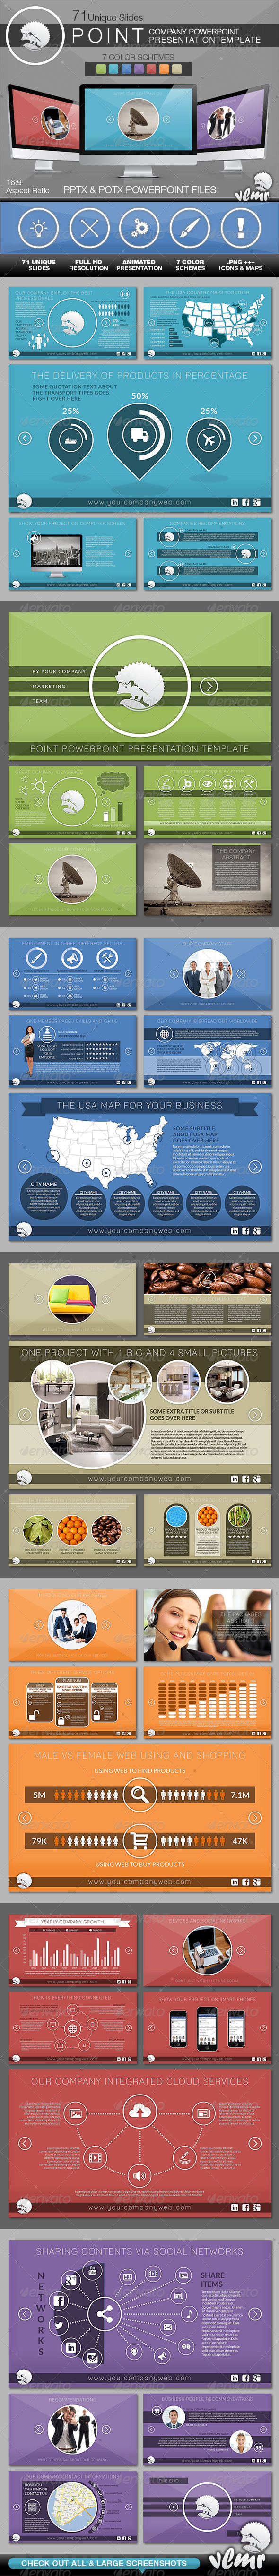 GraphicRiver Point Company PowerPoint Presentation Template 6713928